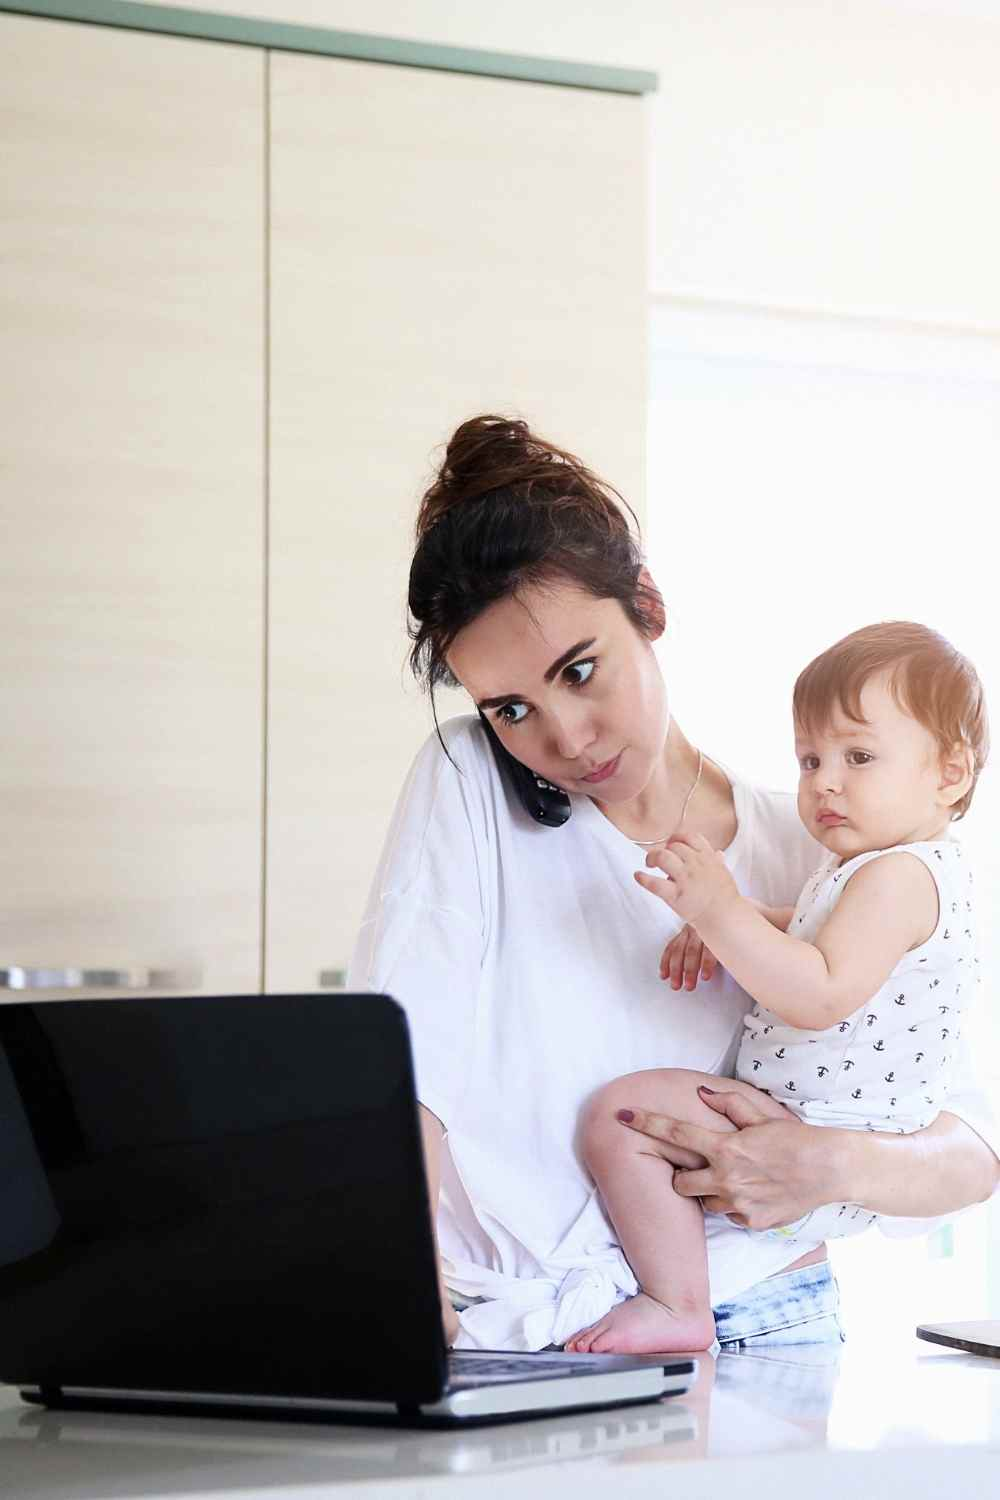 working mum holding a baby in the kitchen whilst on the phone and working on a laptop